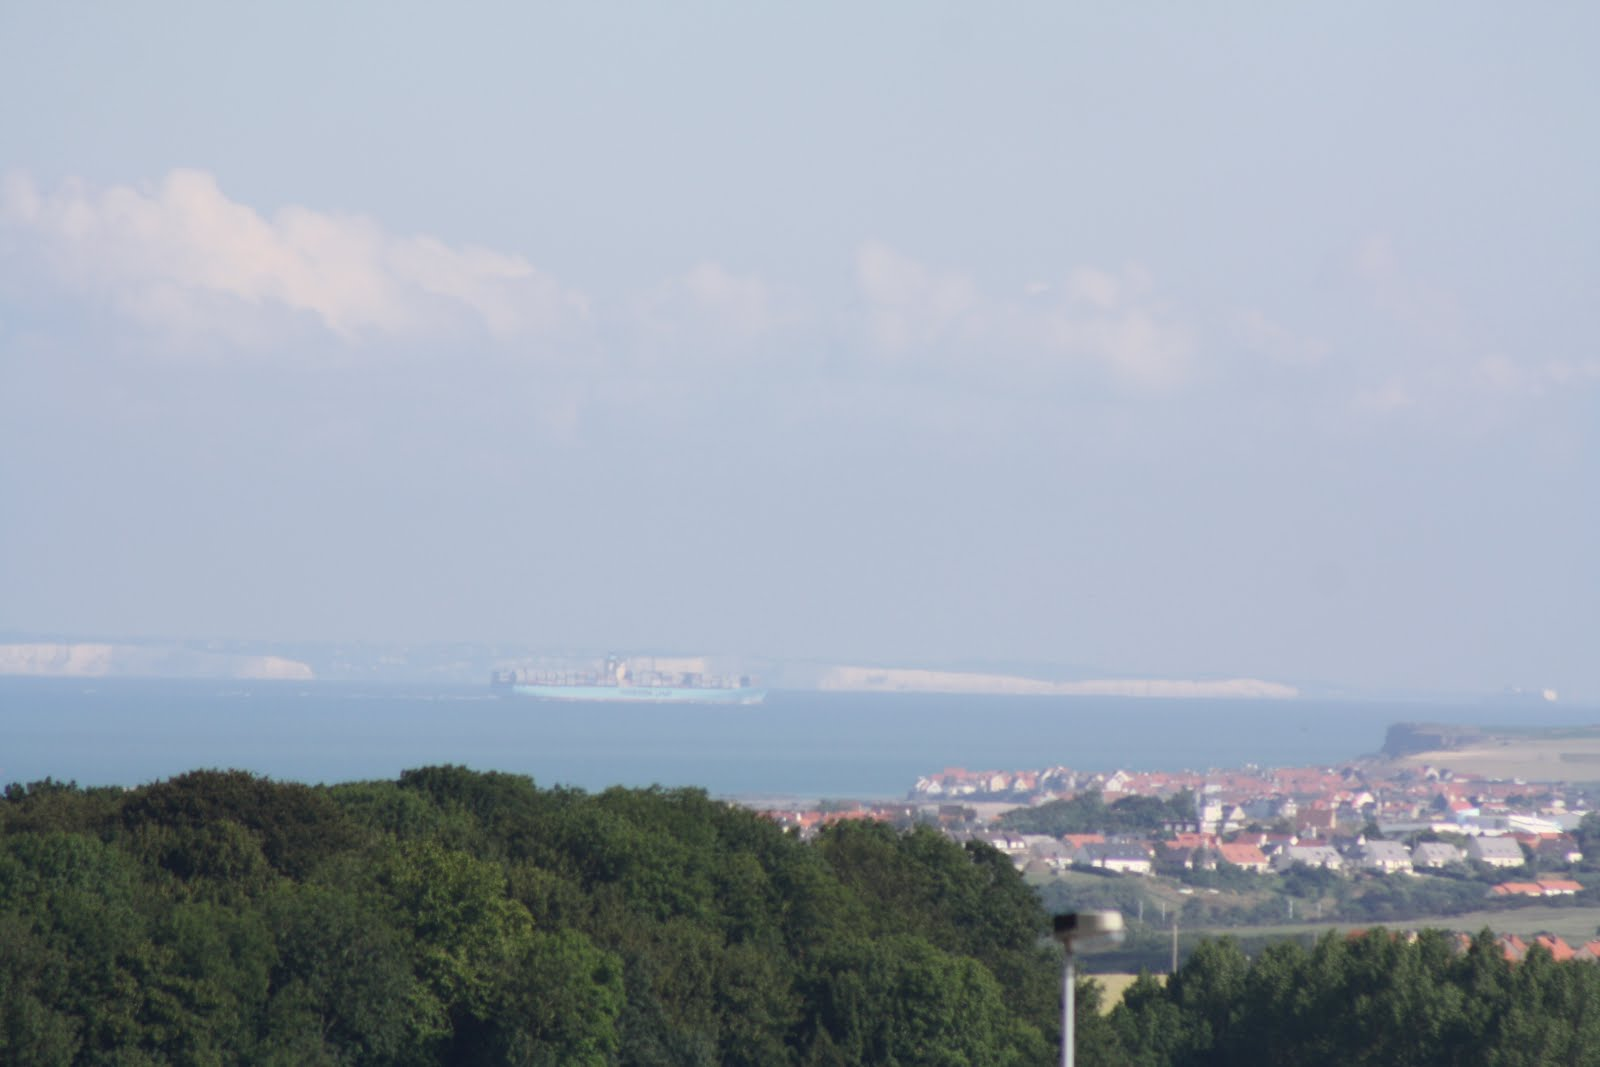 La Havre- Dover in distance